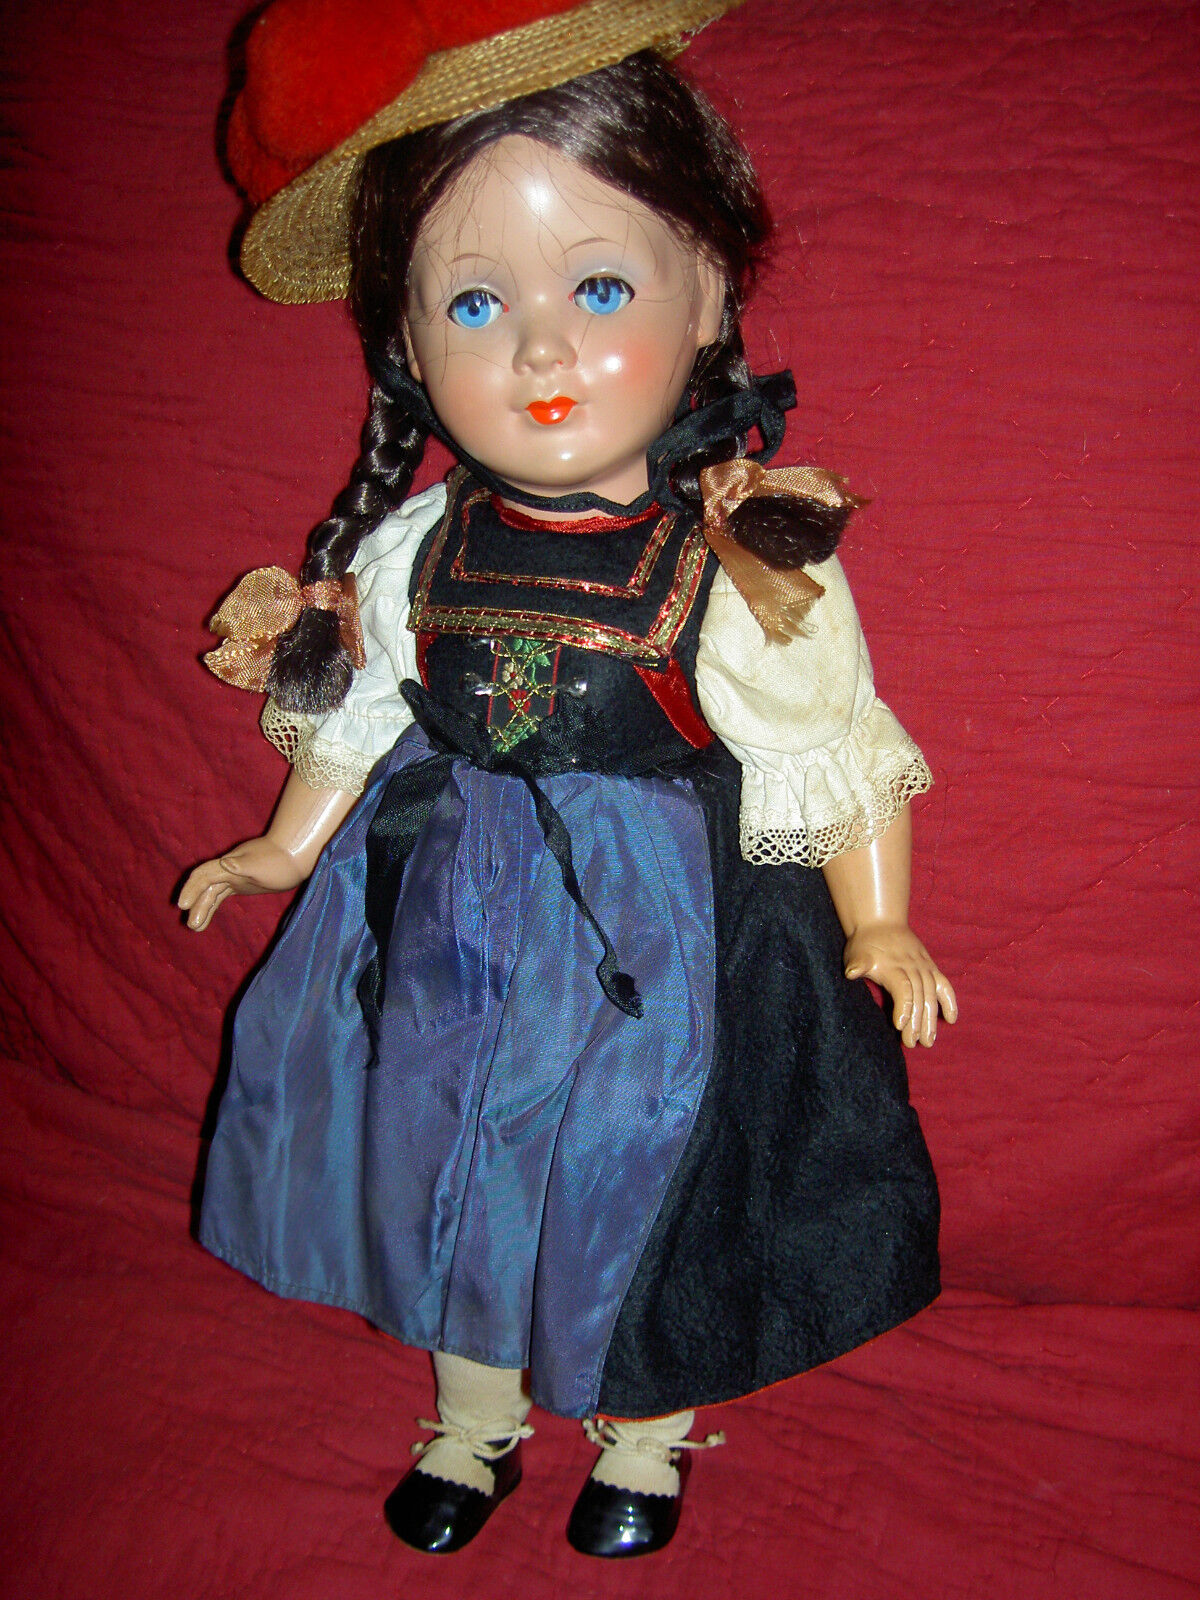 LARGE 18  jt'd. celluloid or early plastic 1940 German Schwaebisch dressed doll